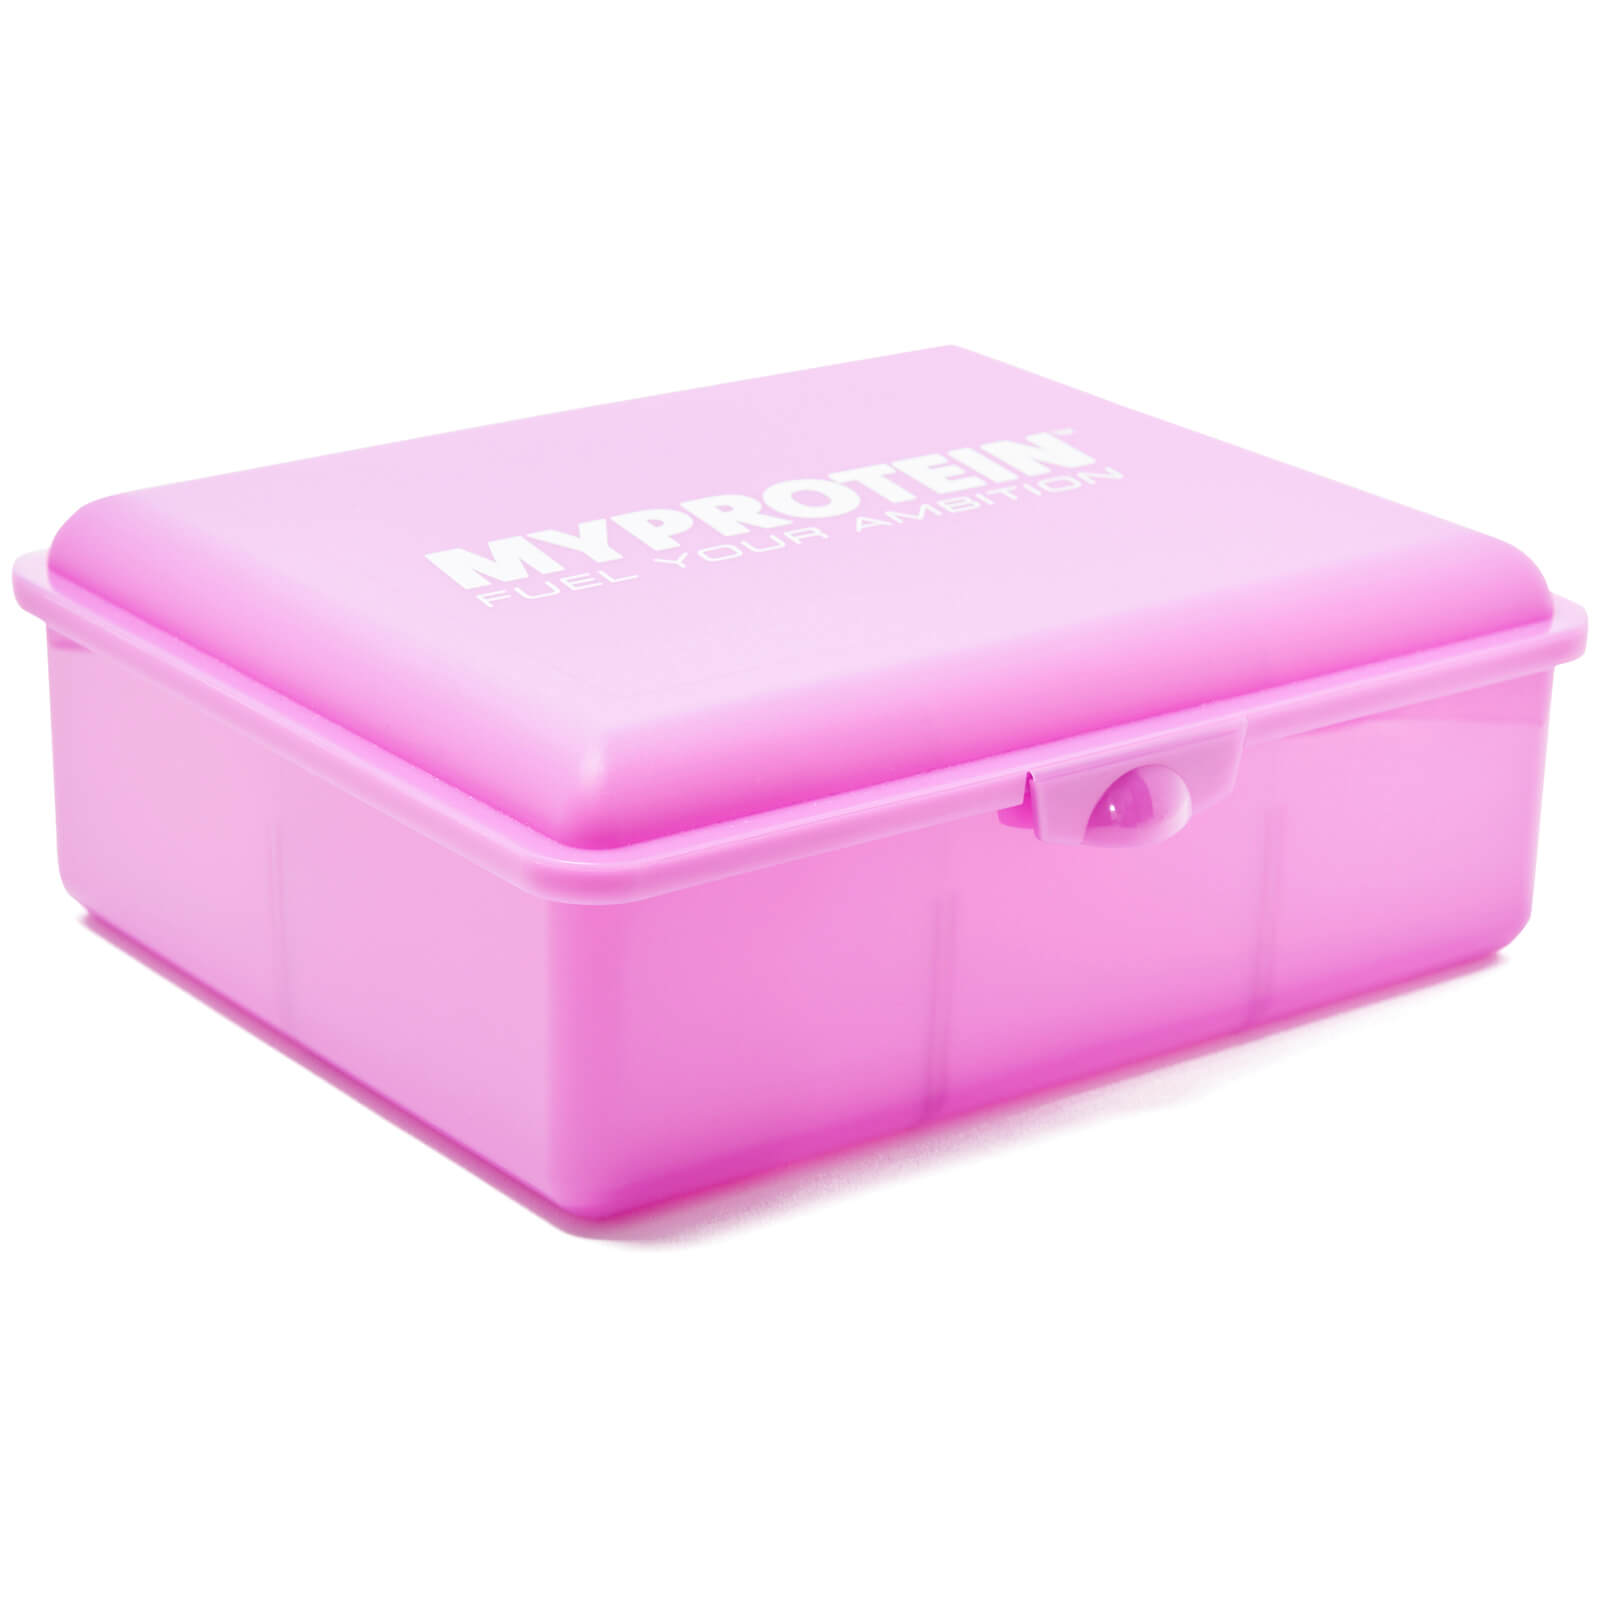 Myprotein Food KlickBox, Large - Pink